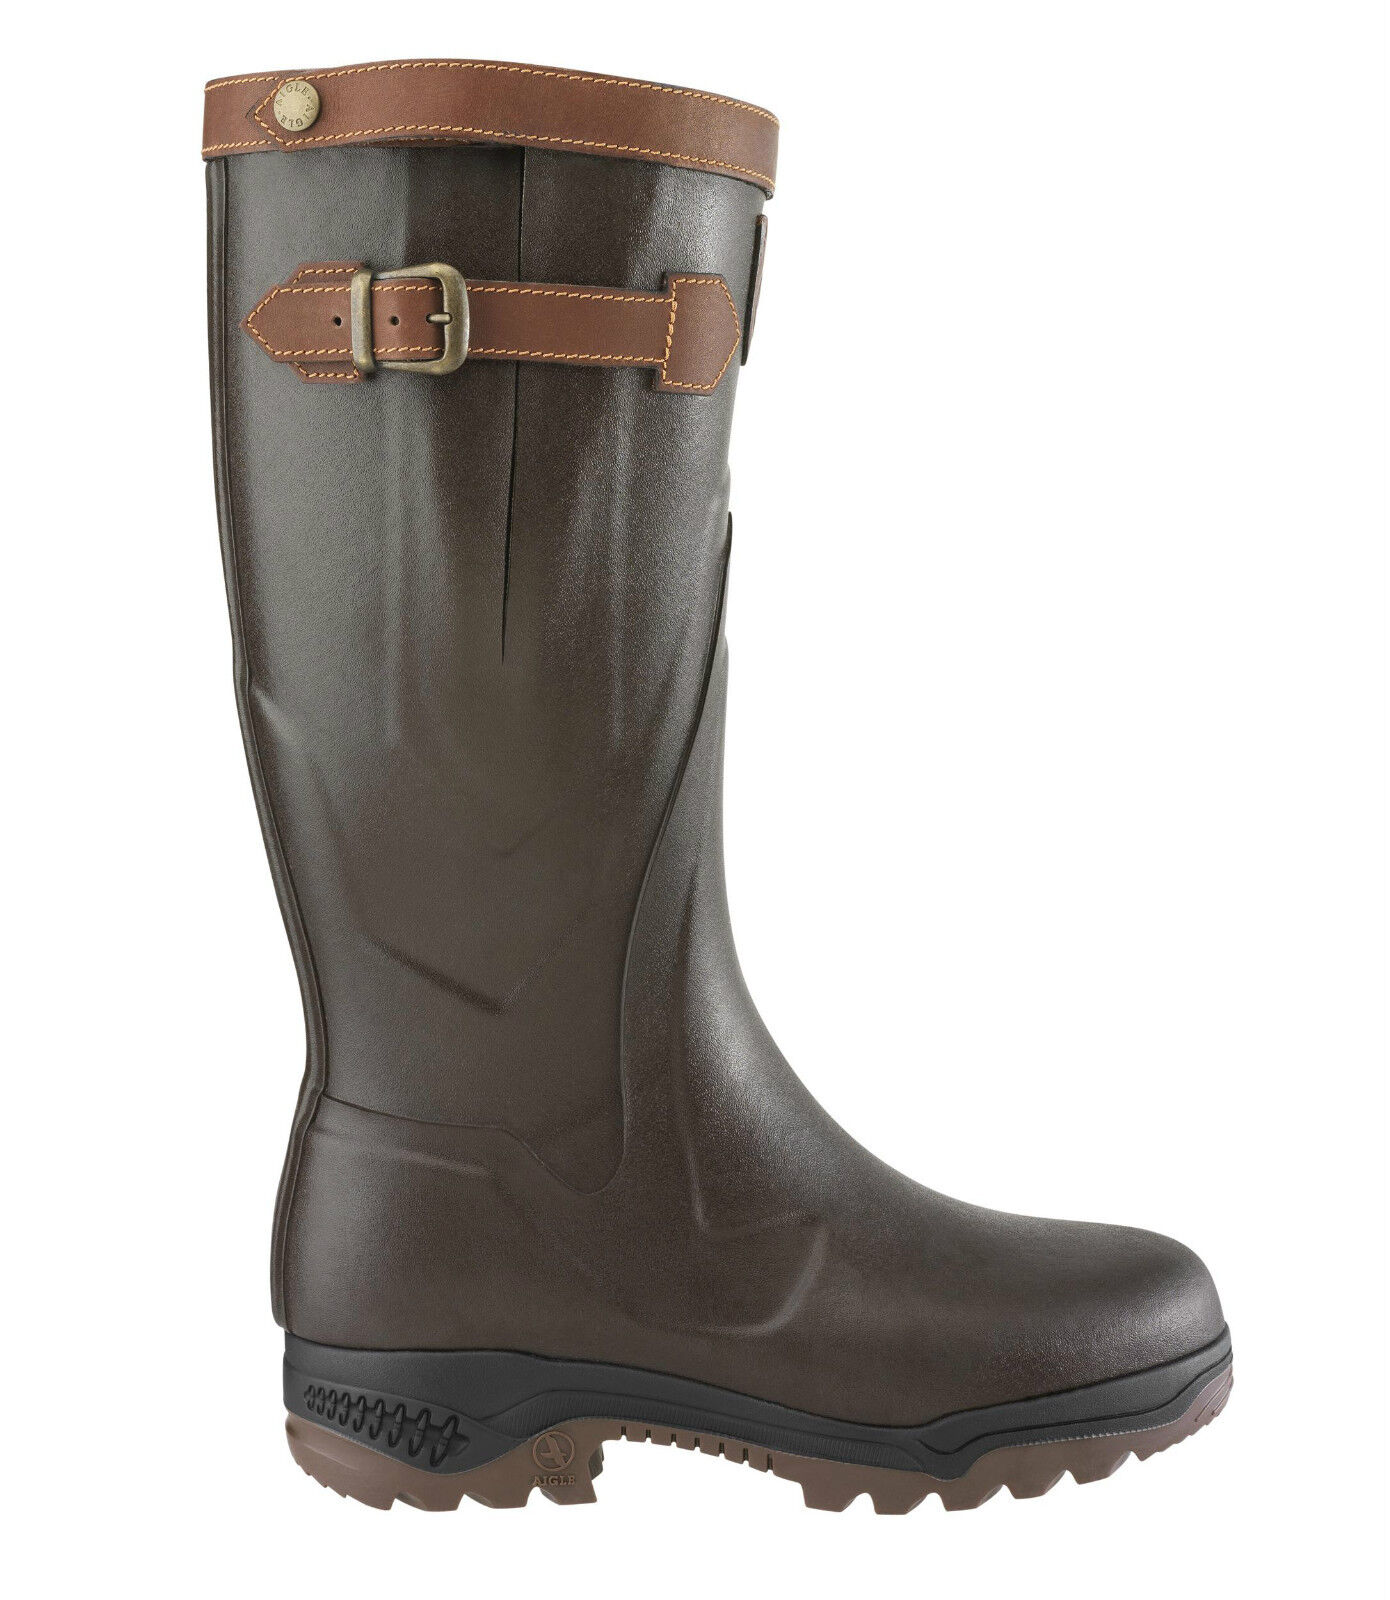 Aigle rubber boots parcours 2 signature-all leather  - 84255 brun  best price